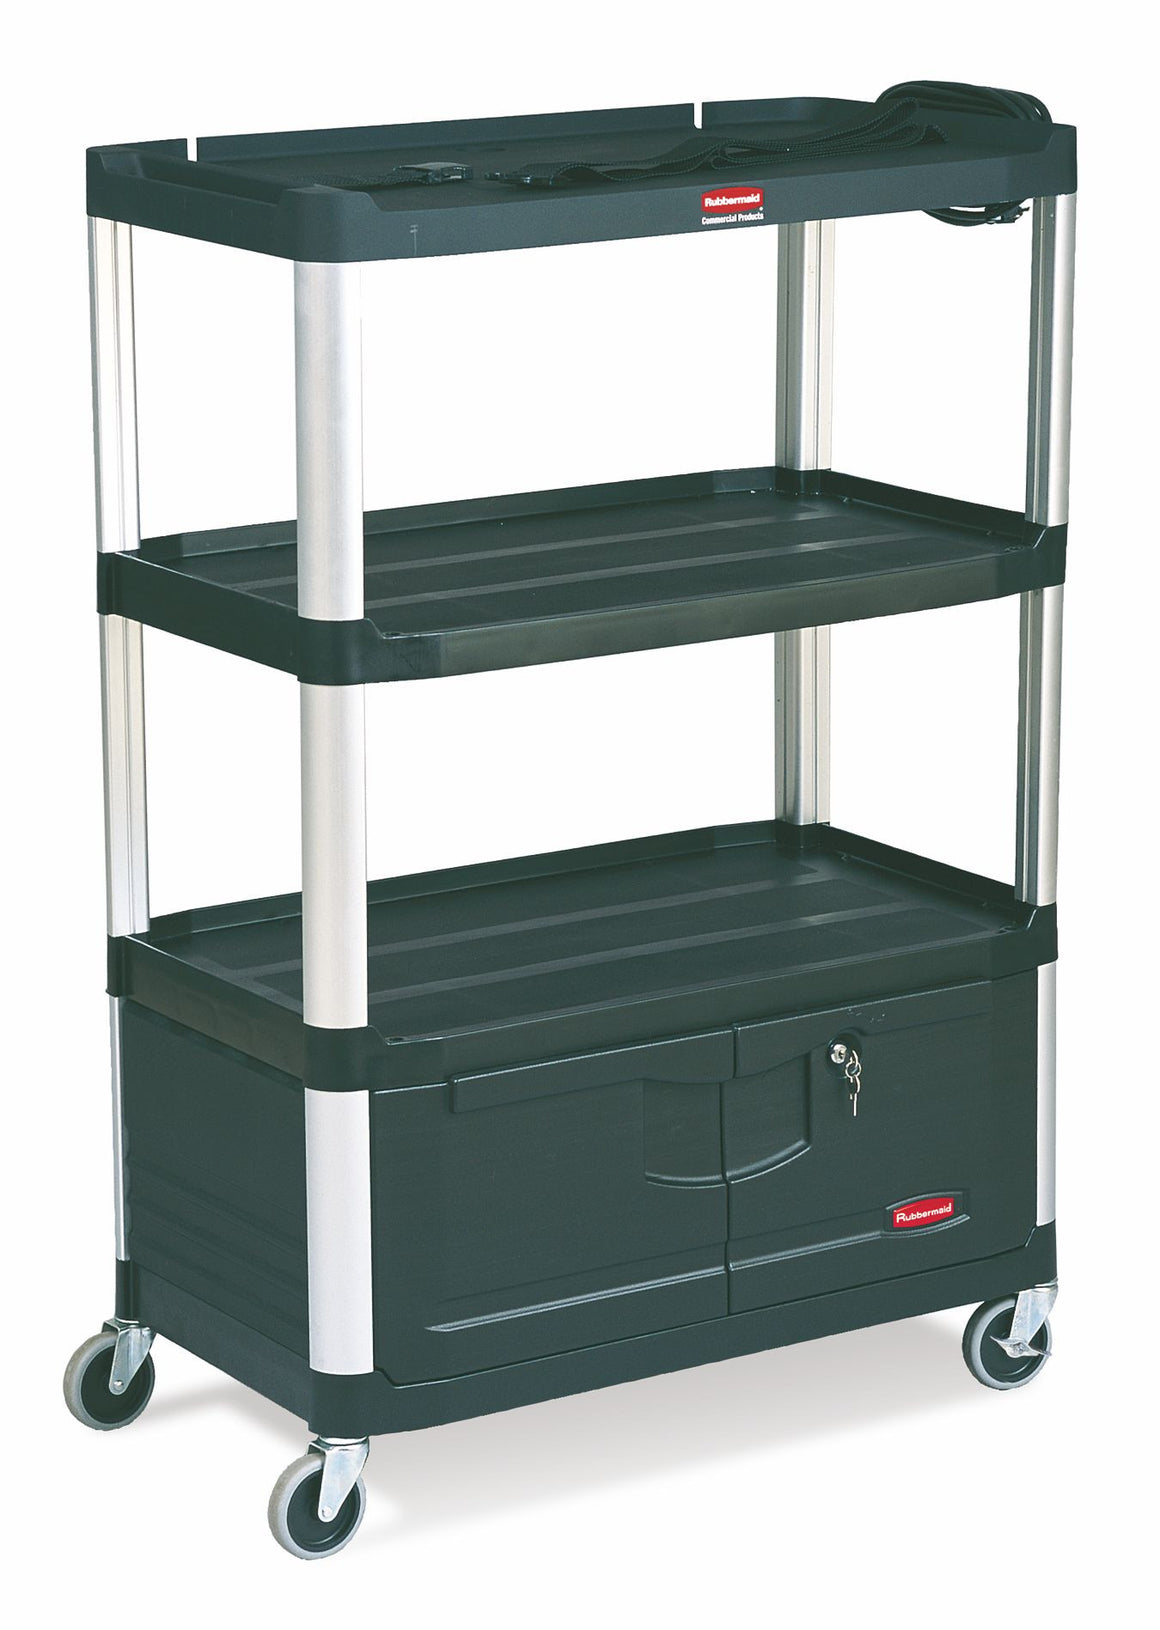 "AUDIO-VISUAL CART 4-SHELVES W/CABINET &CASTERS 36½x20x48"" BLACK"